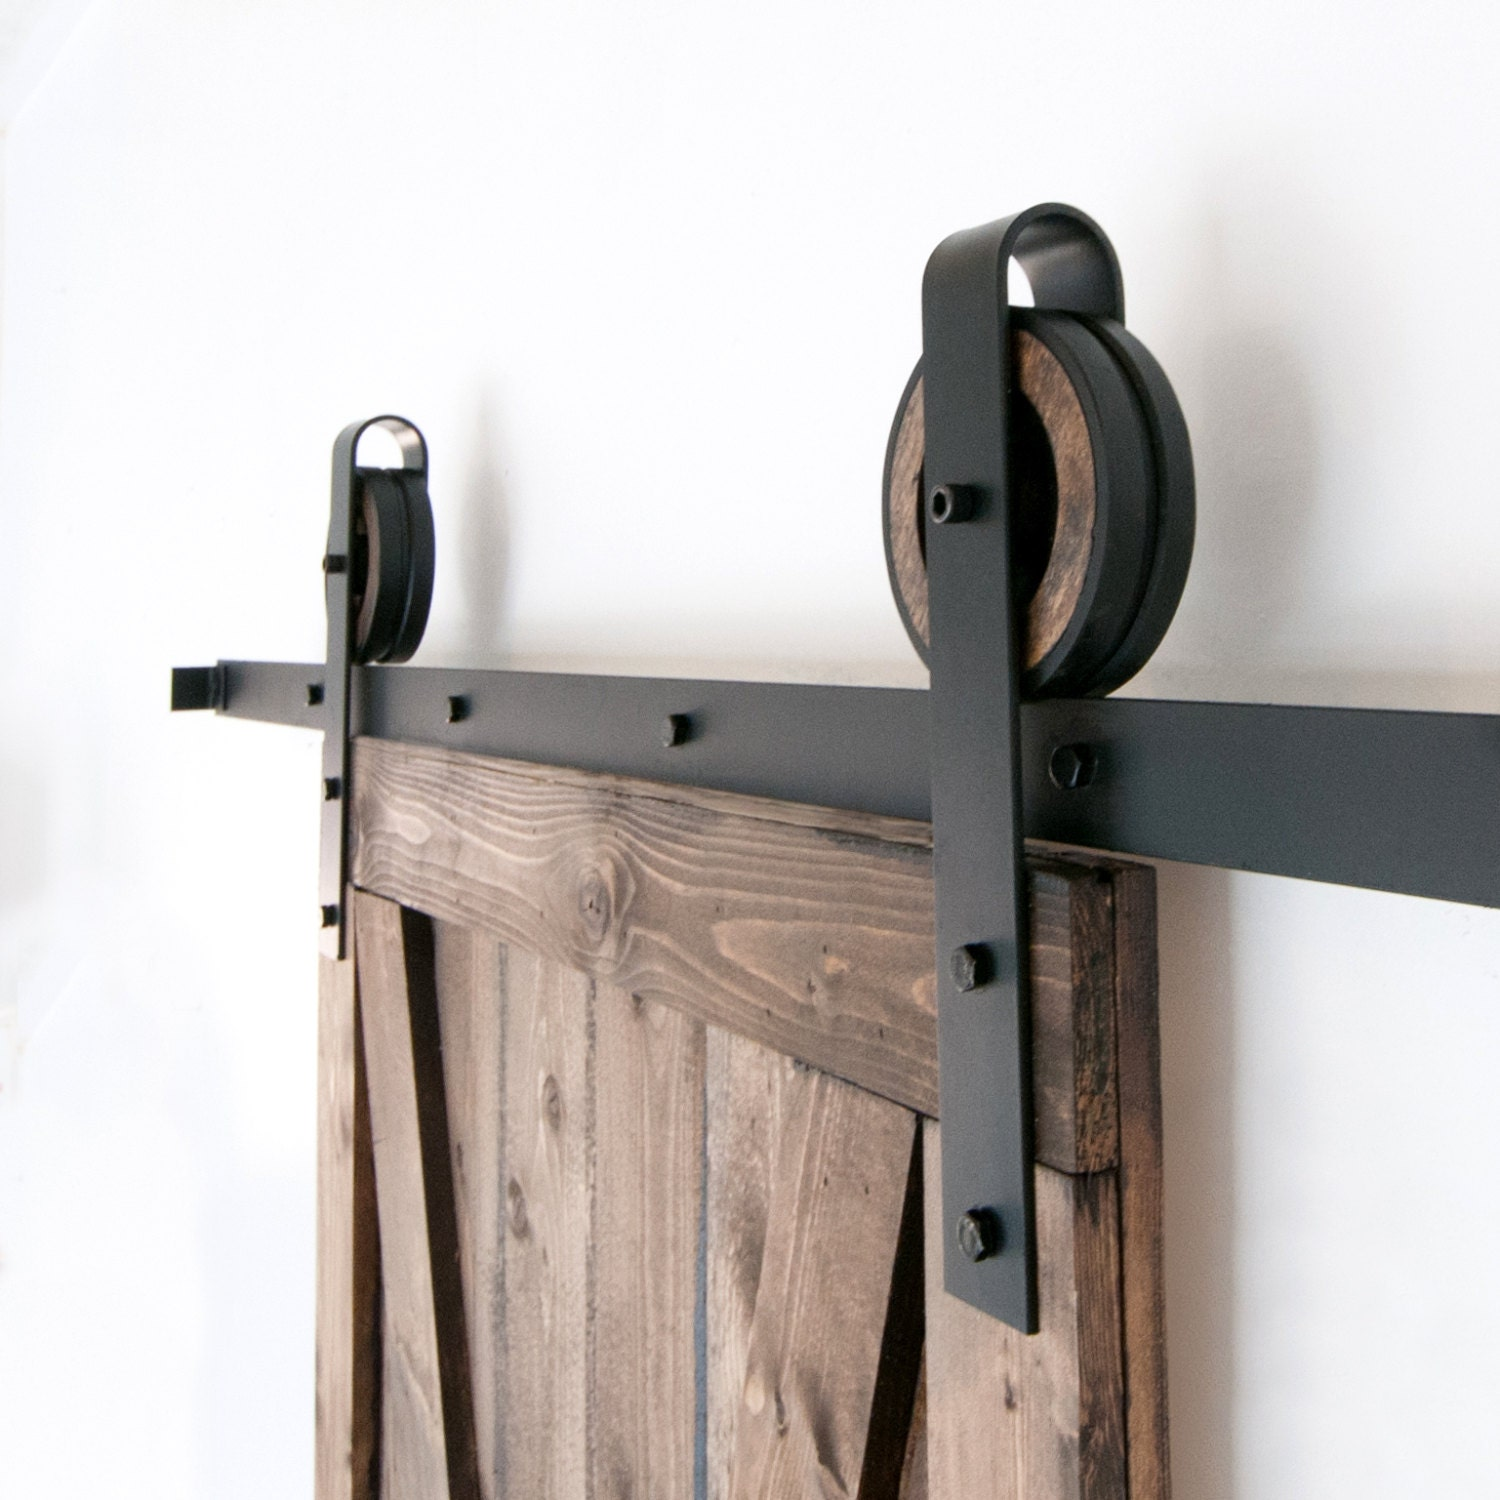 Wide strap rustic sliding barn door closet hardware set for Rustic hardware barn doors